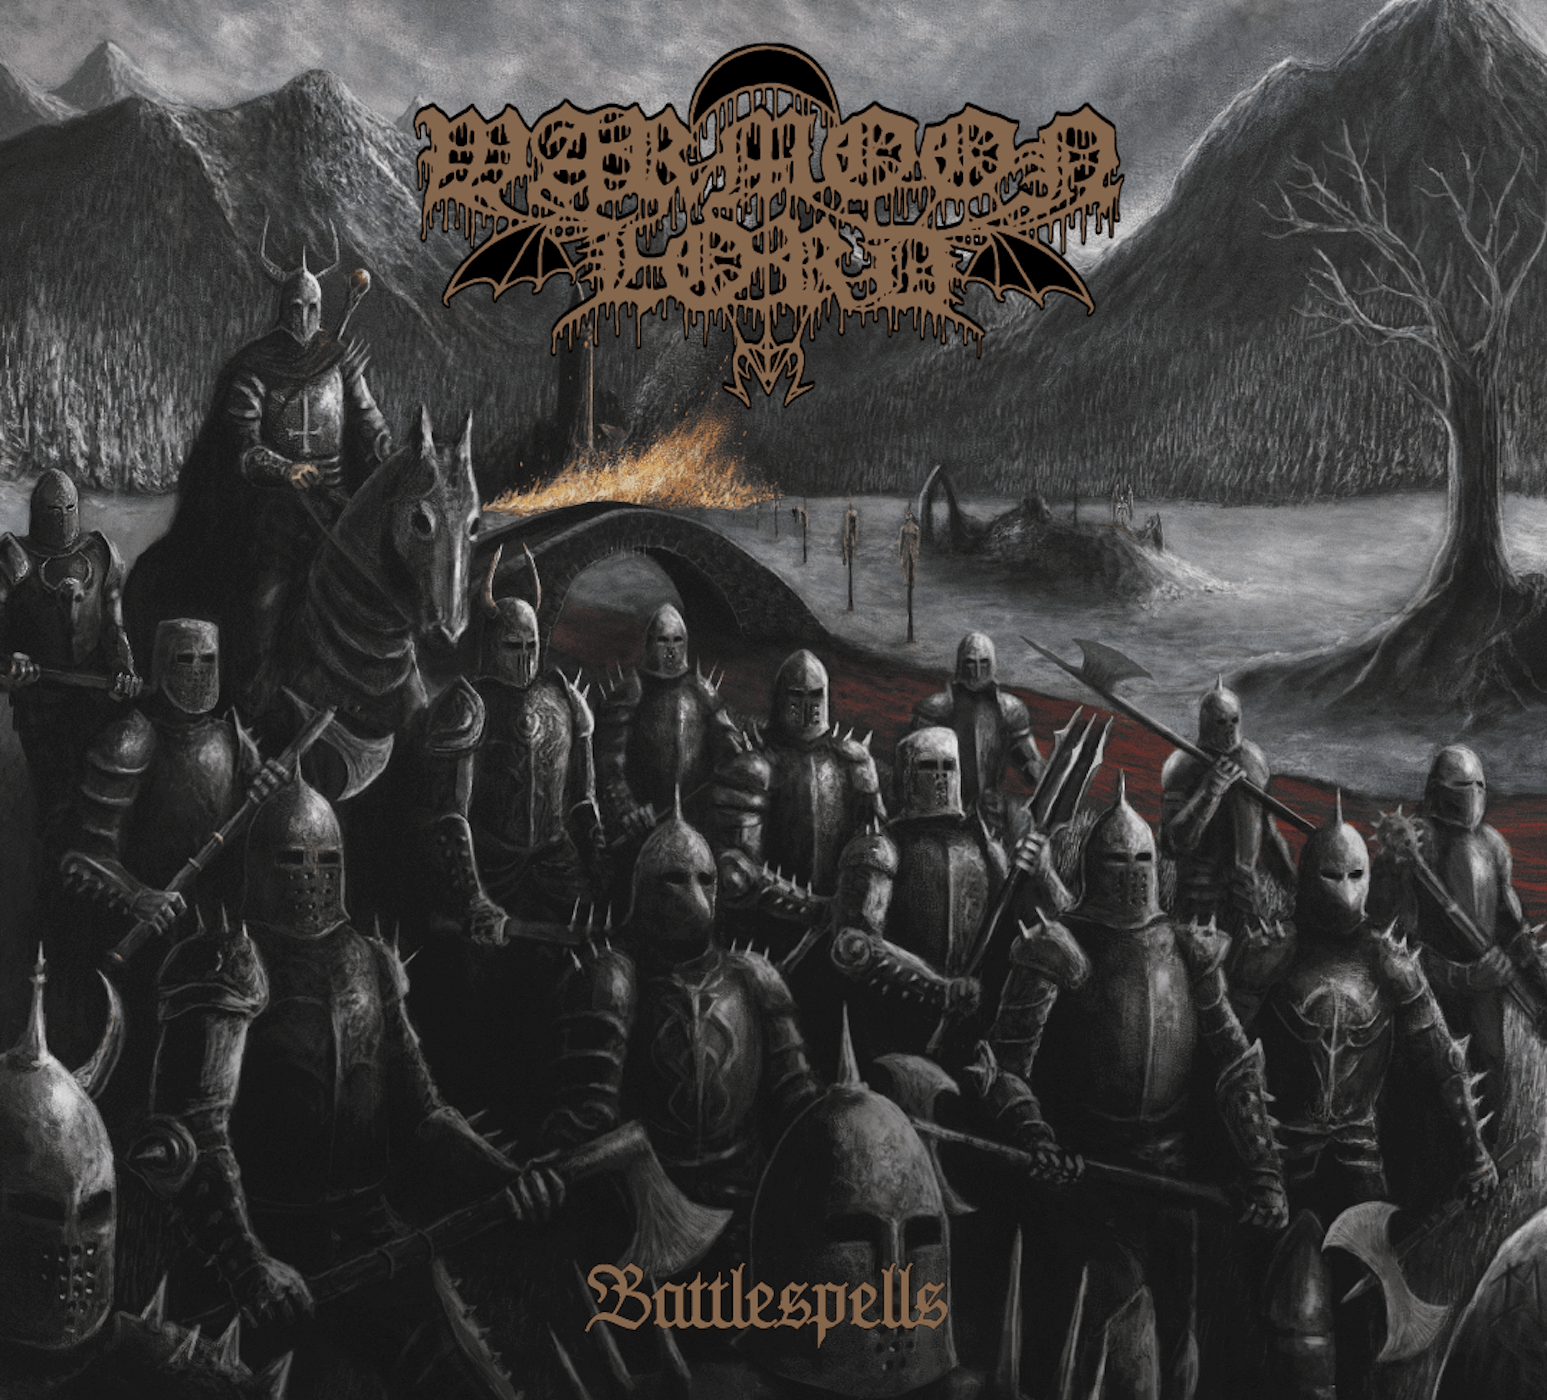 Battlespells by Warmoon Lord album review by Jahmeel Russell. The Finnish band's forthcoming release comes out on June 26 on Warewolf Records